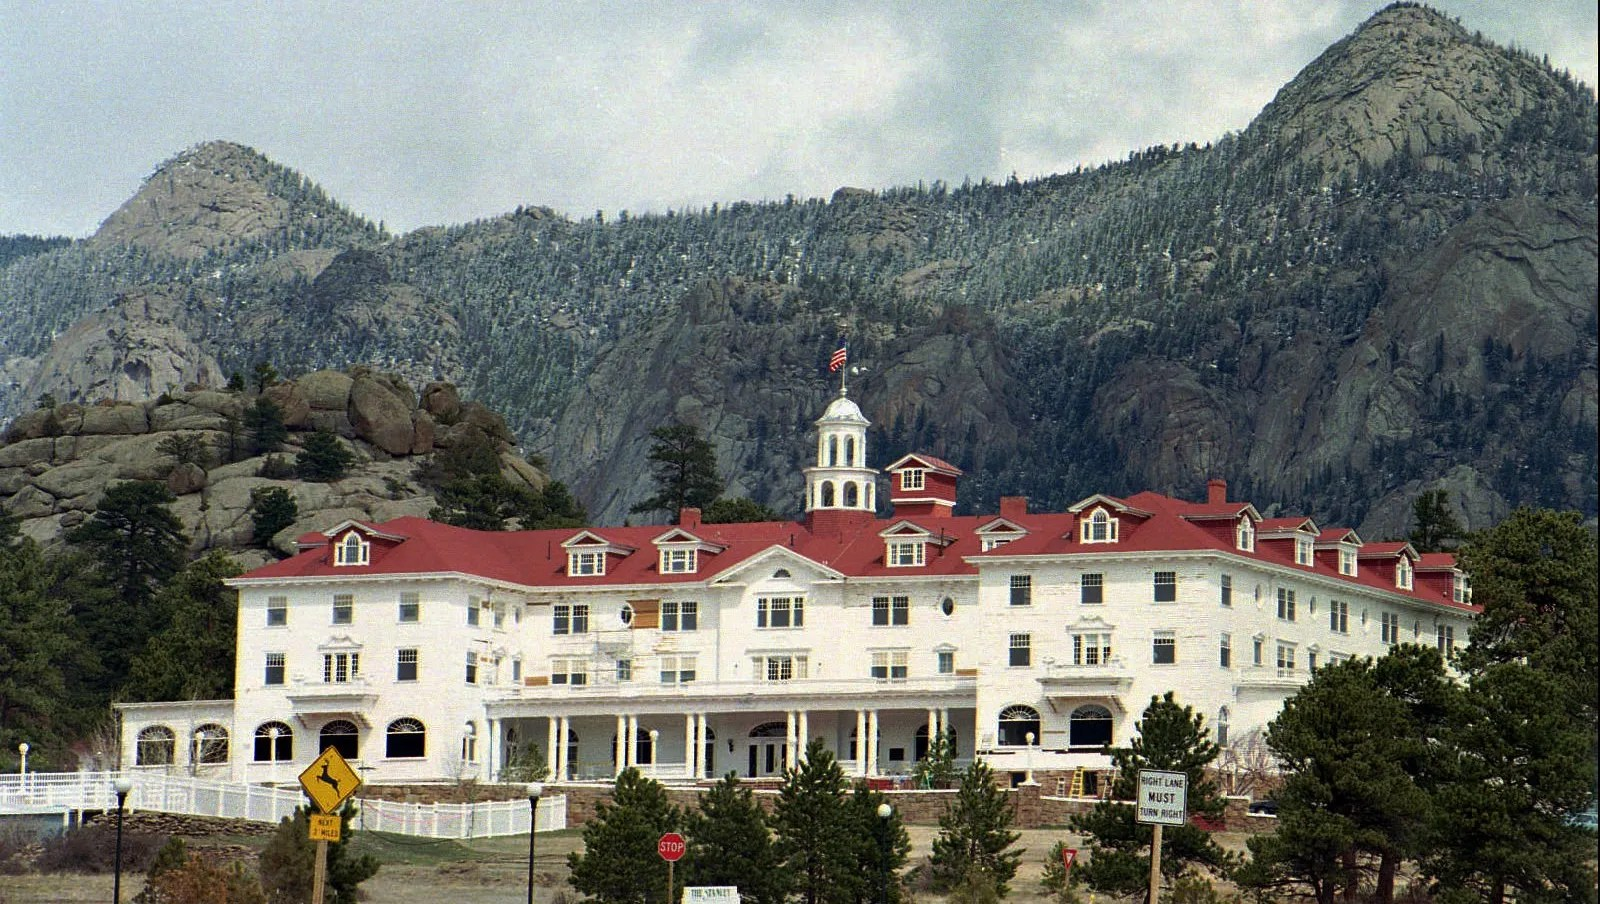 Ghostly Figure Appears In ' Shining' Hotel